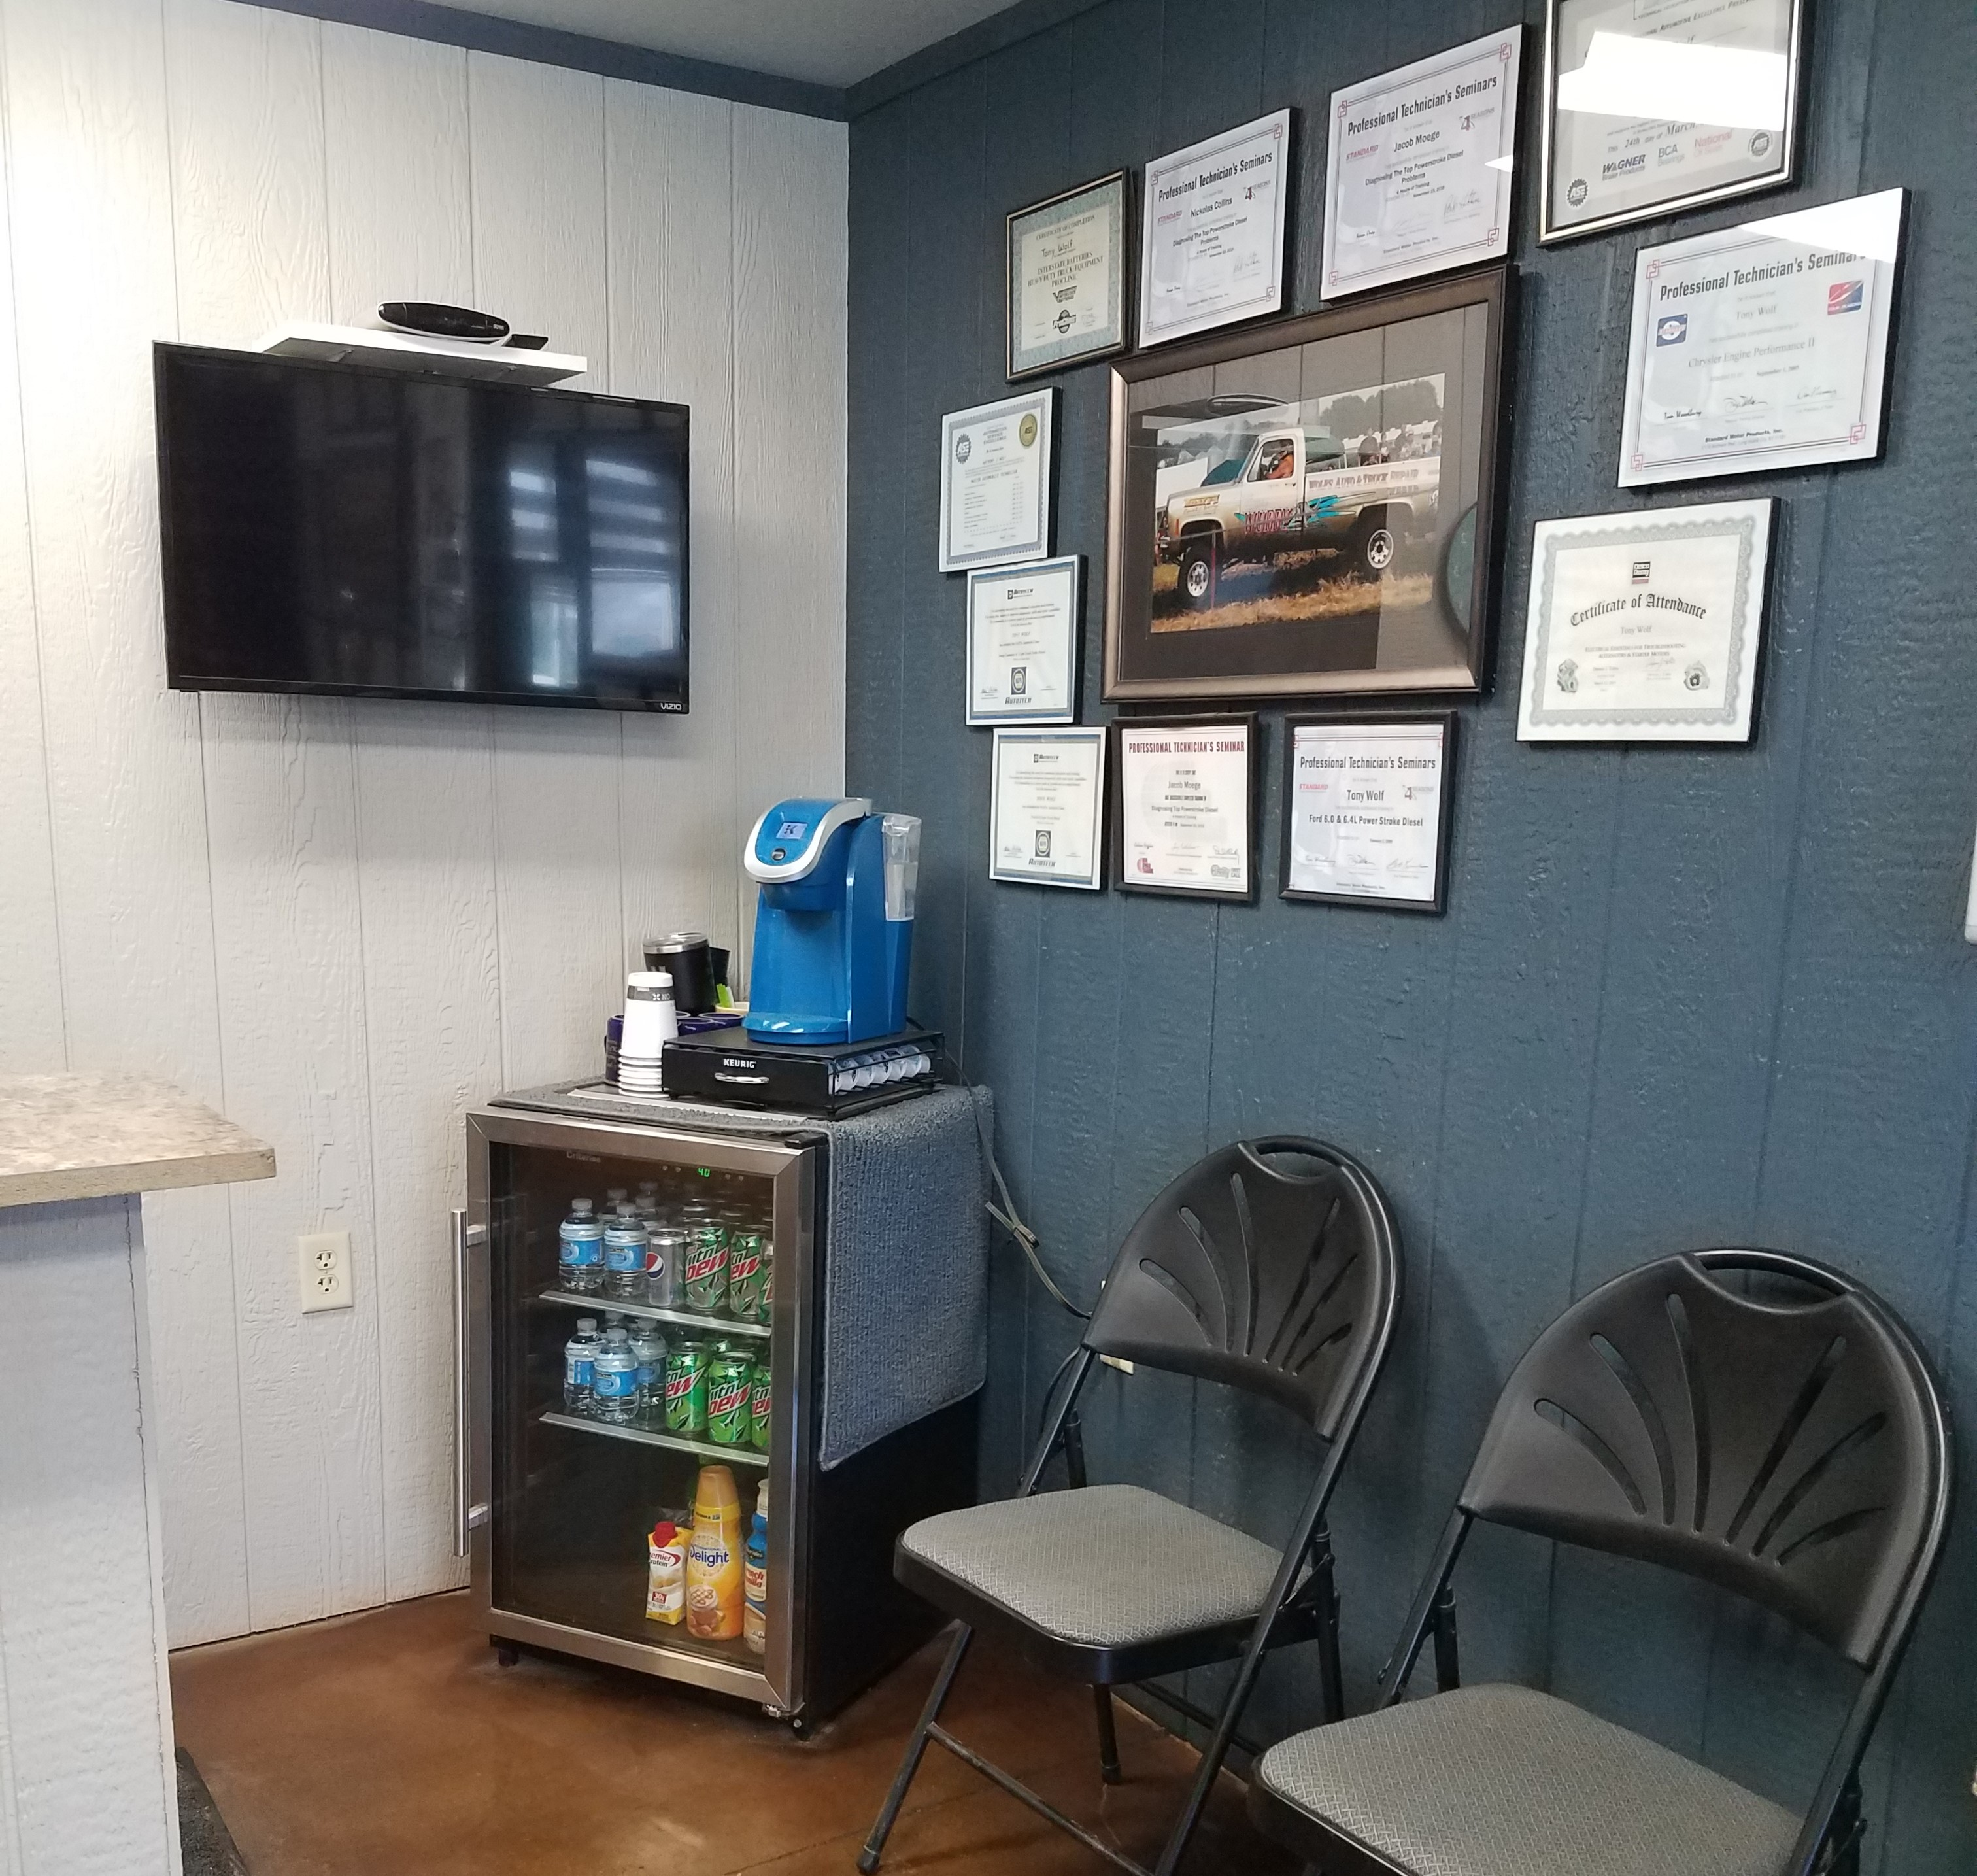 interior view of the waiting room in Wolf's Auto and Truck Repair with chairs, fridge, and a tv